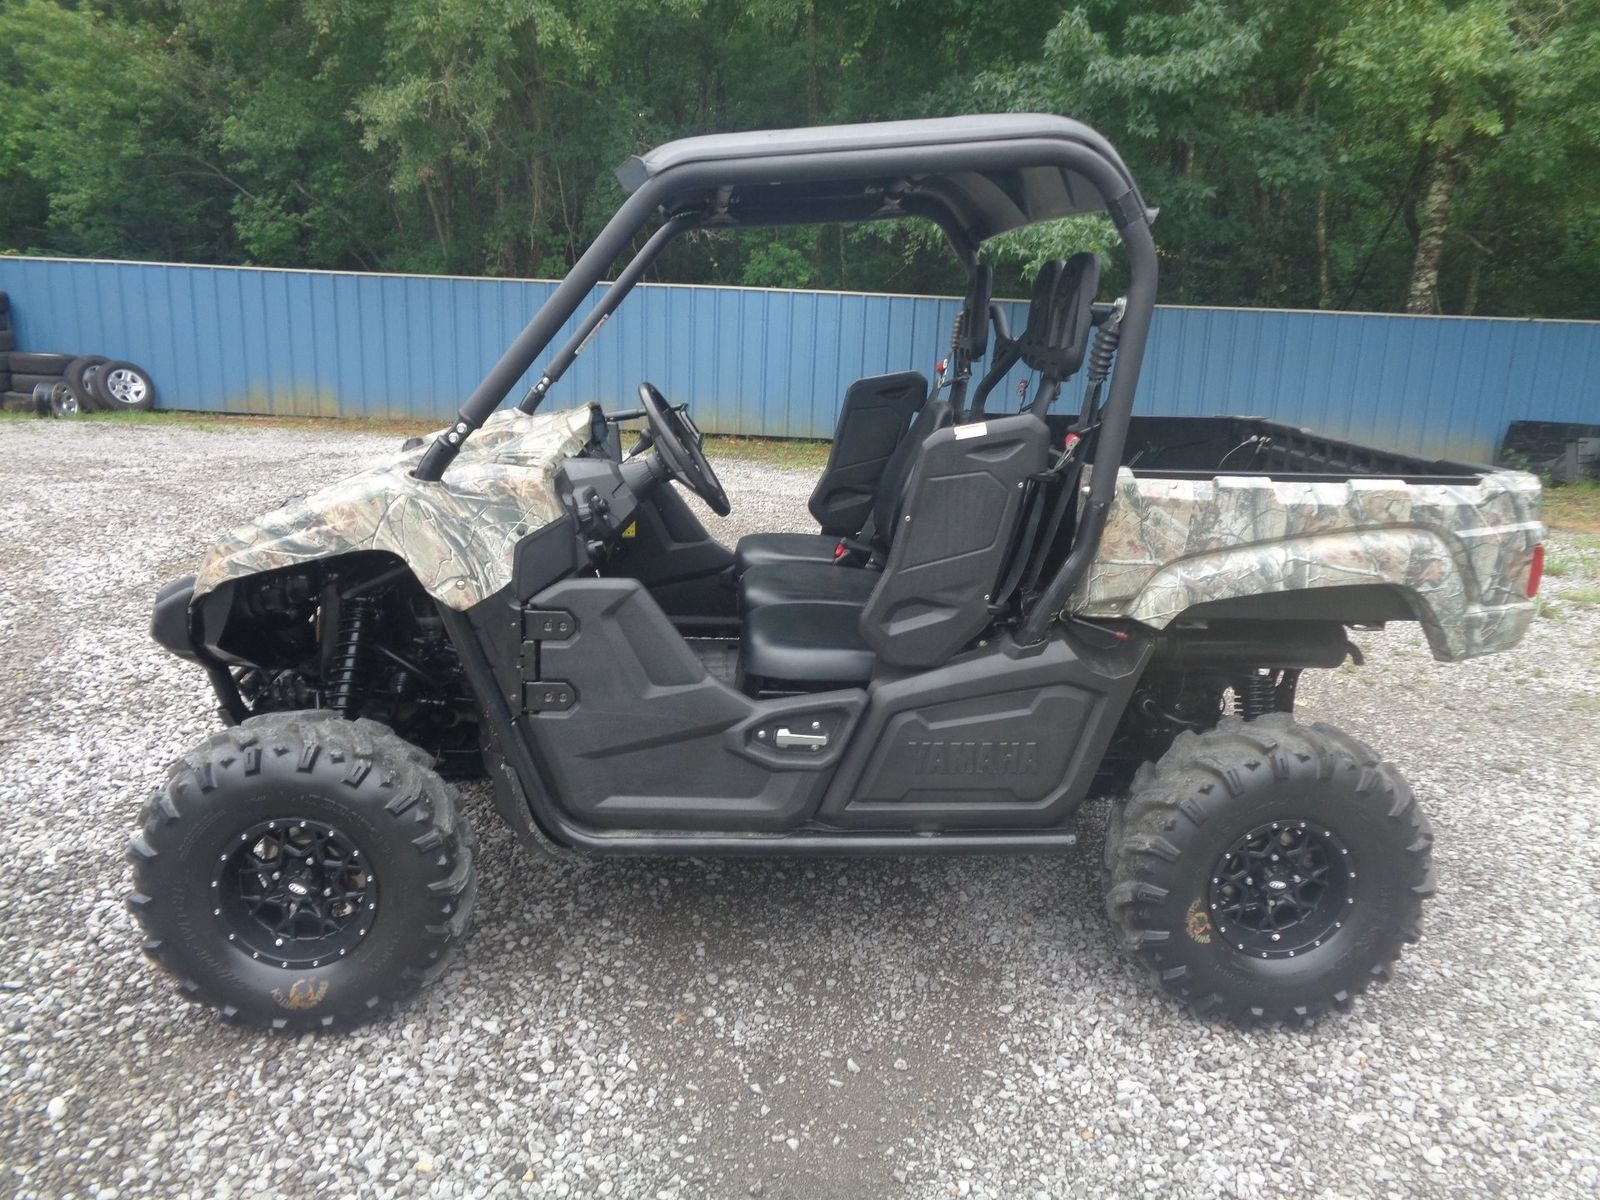 2014 yamaha viking 700 4x4 side by side city louisiana for Yamaha 700 viking